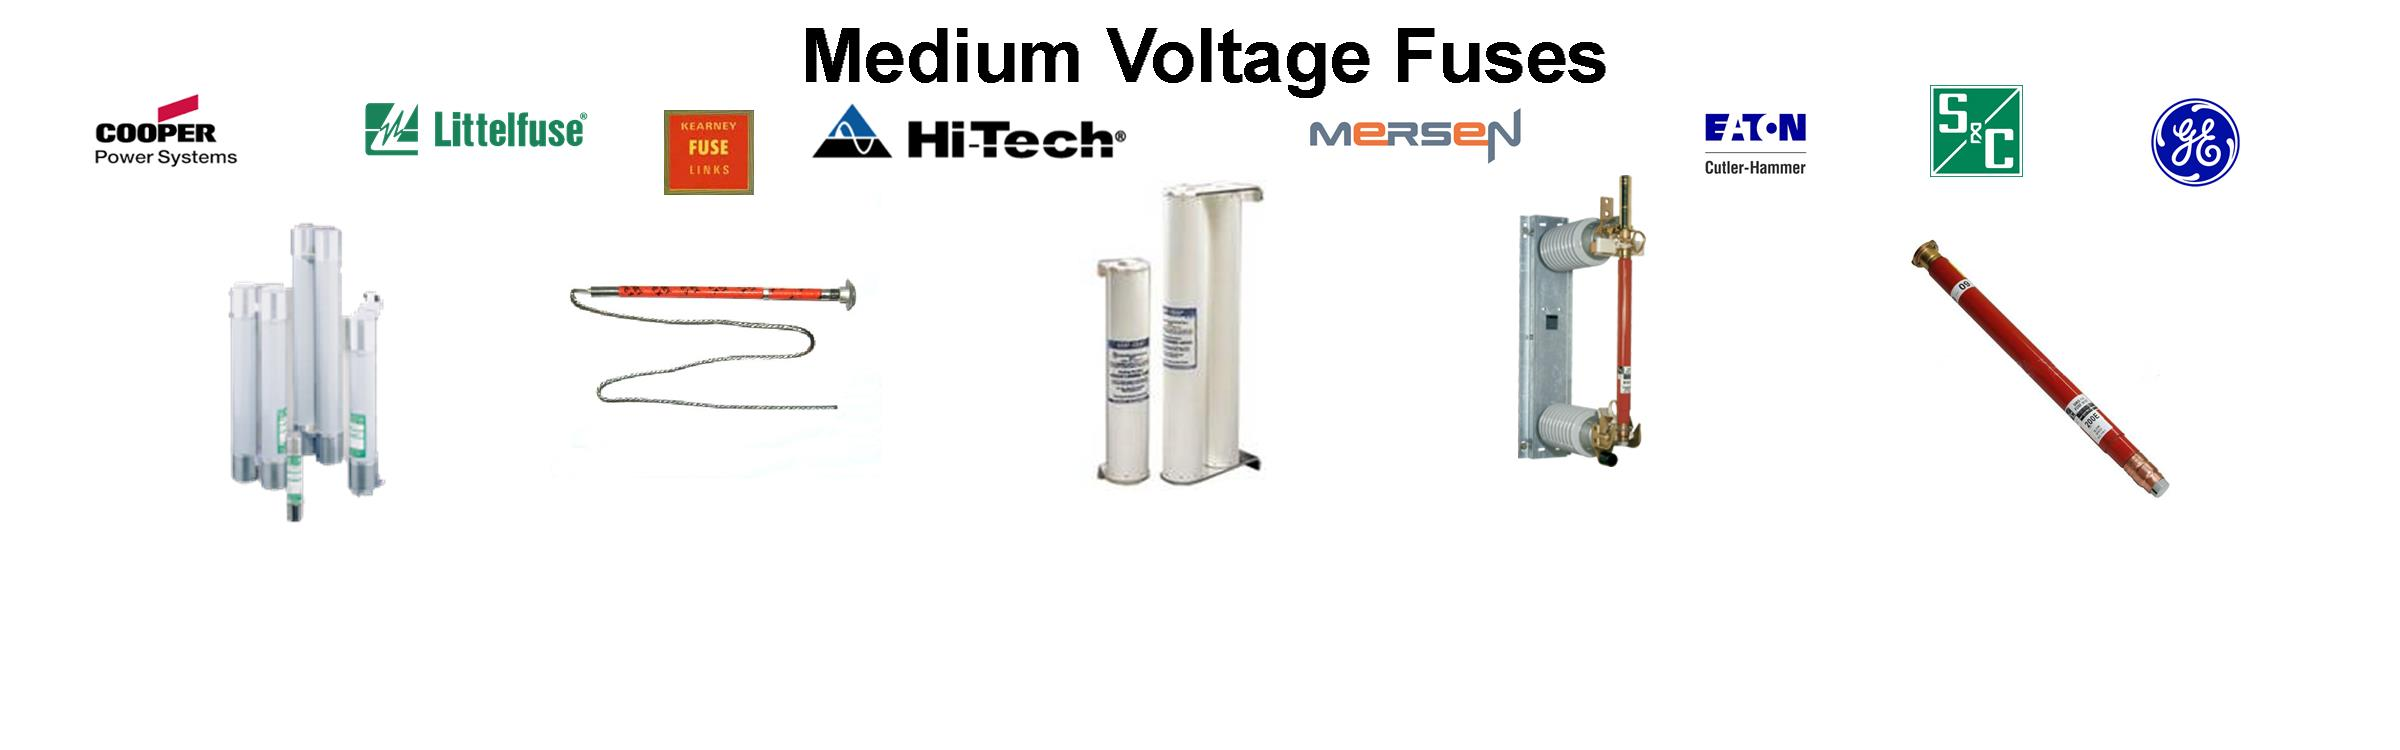 Electrical Supplies Fuses Abb Drives Intermountain Fuse Supply Types Of Littelfuse Medium Voltage Banner Website1